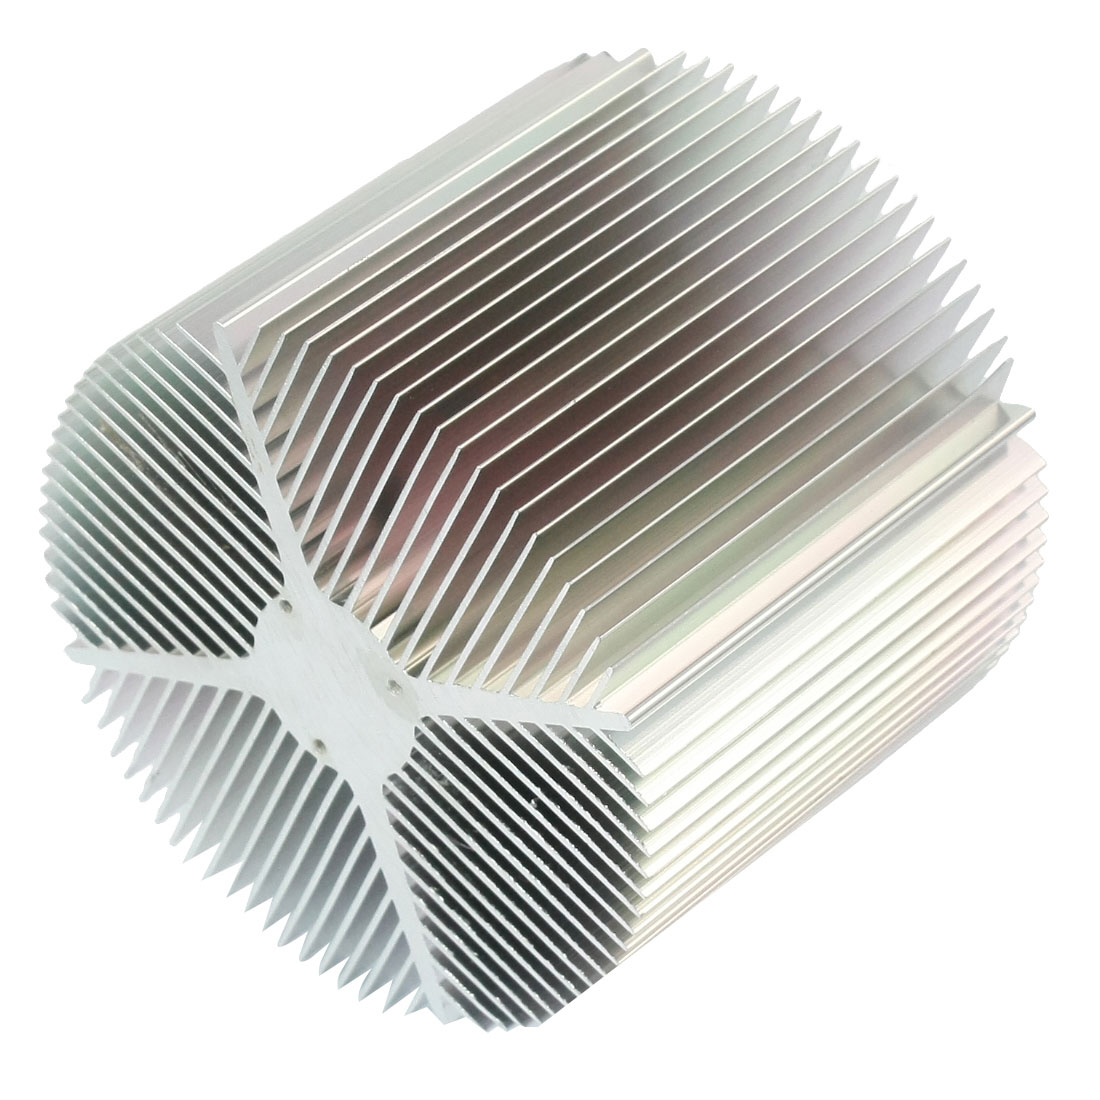 90mm x 75mm Cylinder 20W/30W High Power LED Heatsink Aluminium Cooling Fin